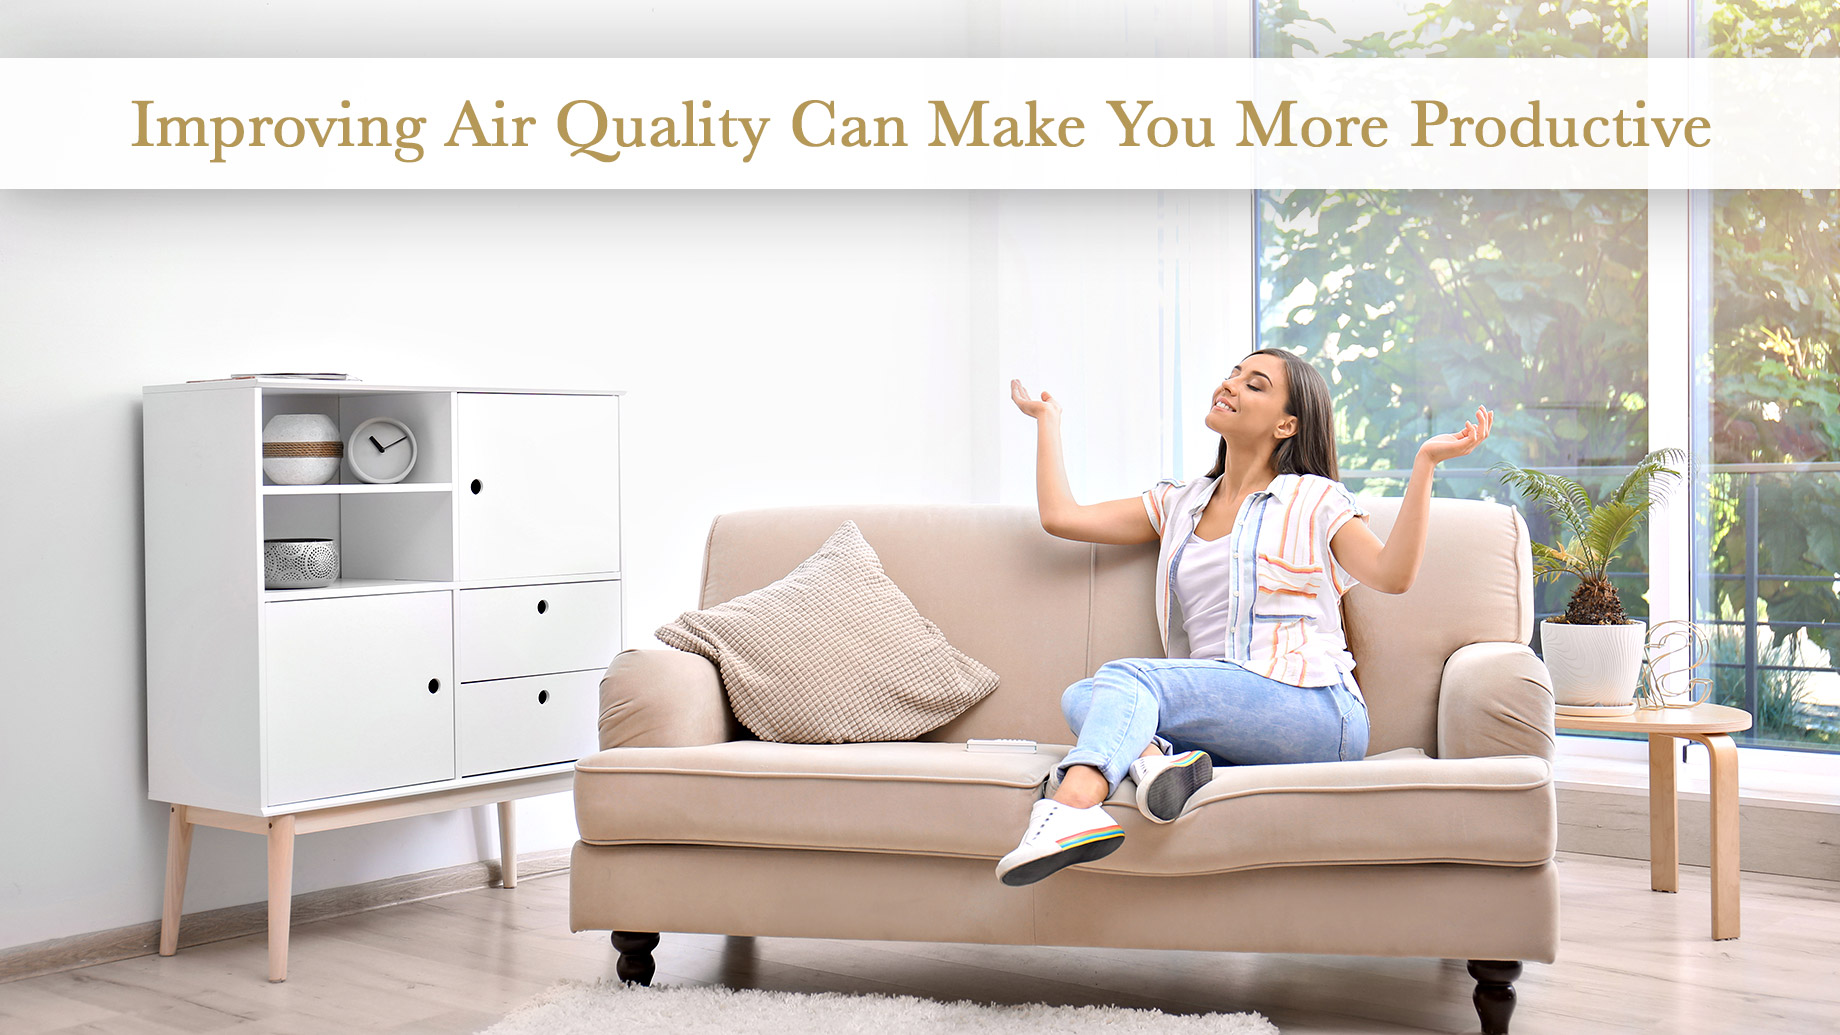 Improving Air Quality Can Make You More Productive